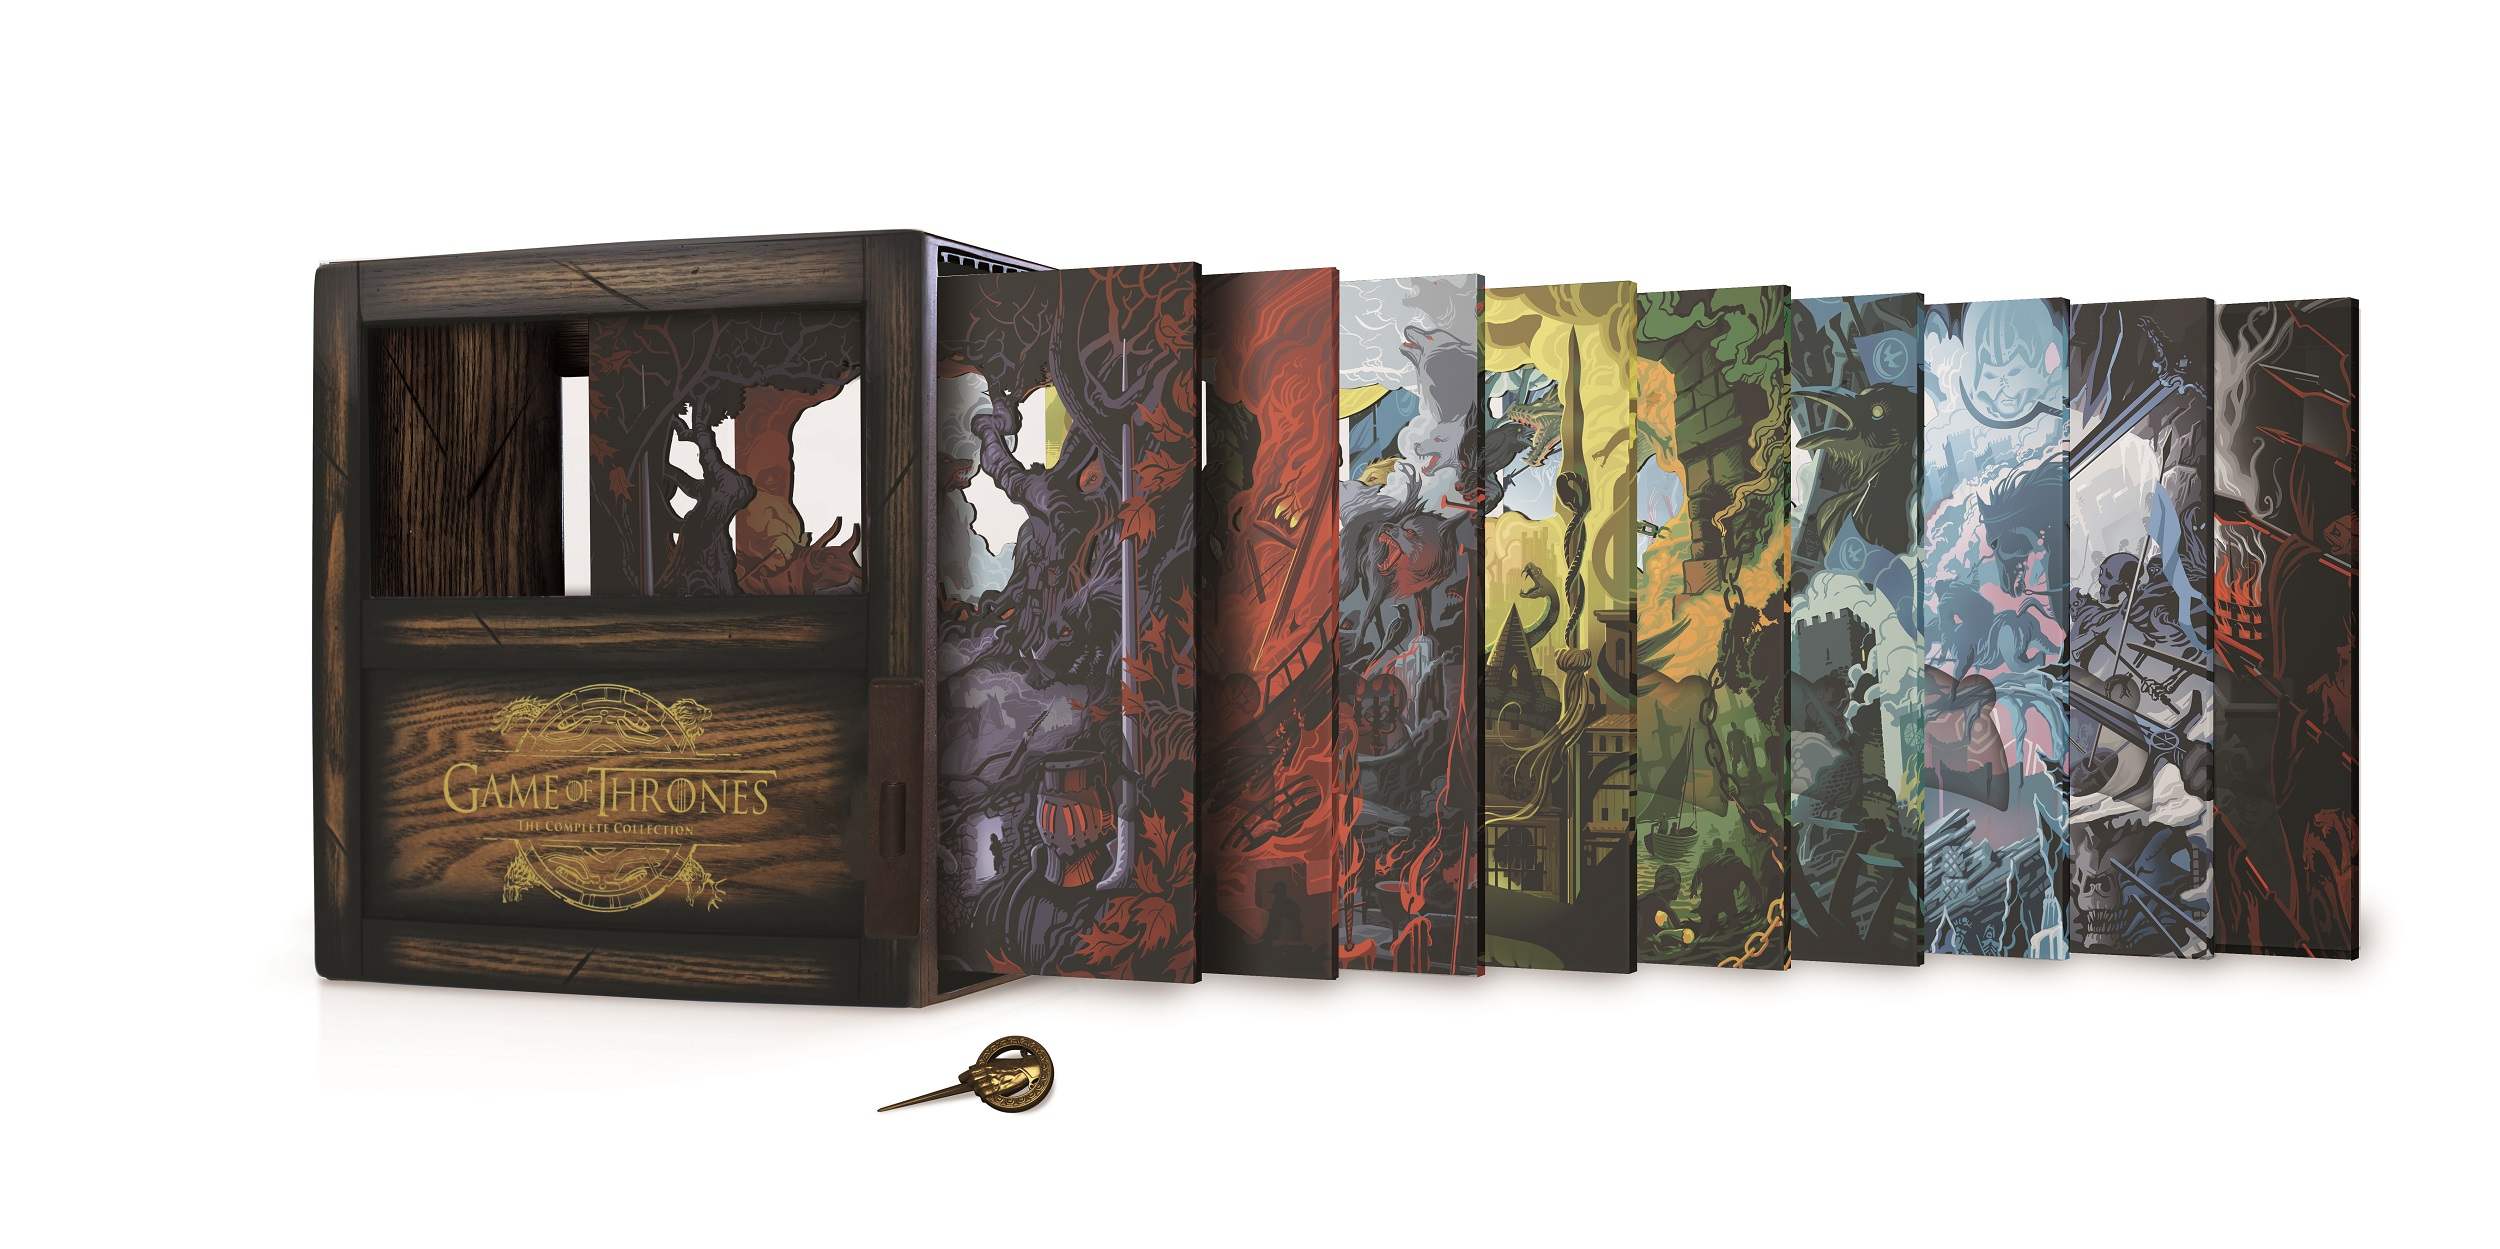 Watchers reviews Game of Thrones: The Complete Collection Collector's Set on Blu-ray!